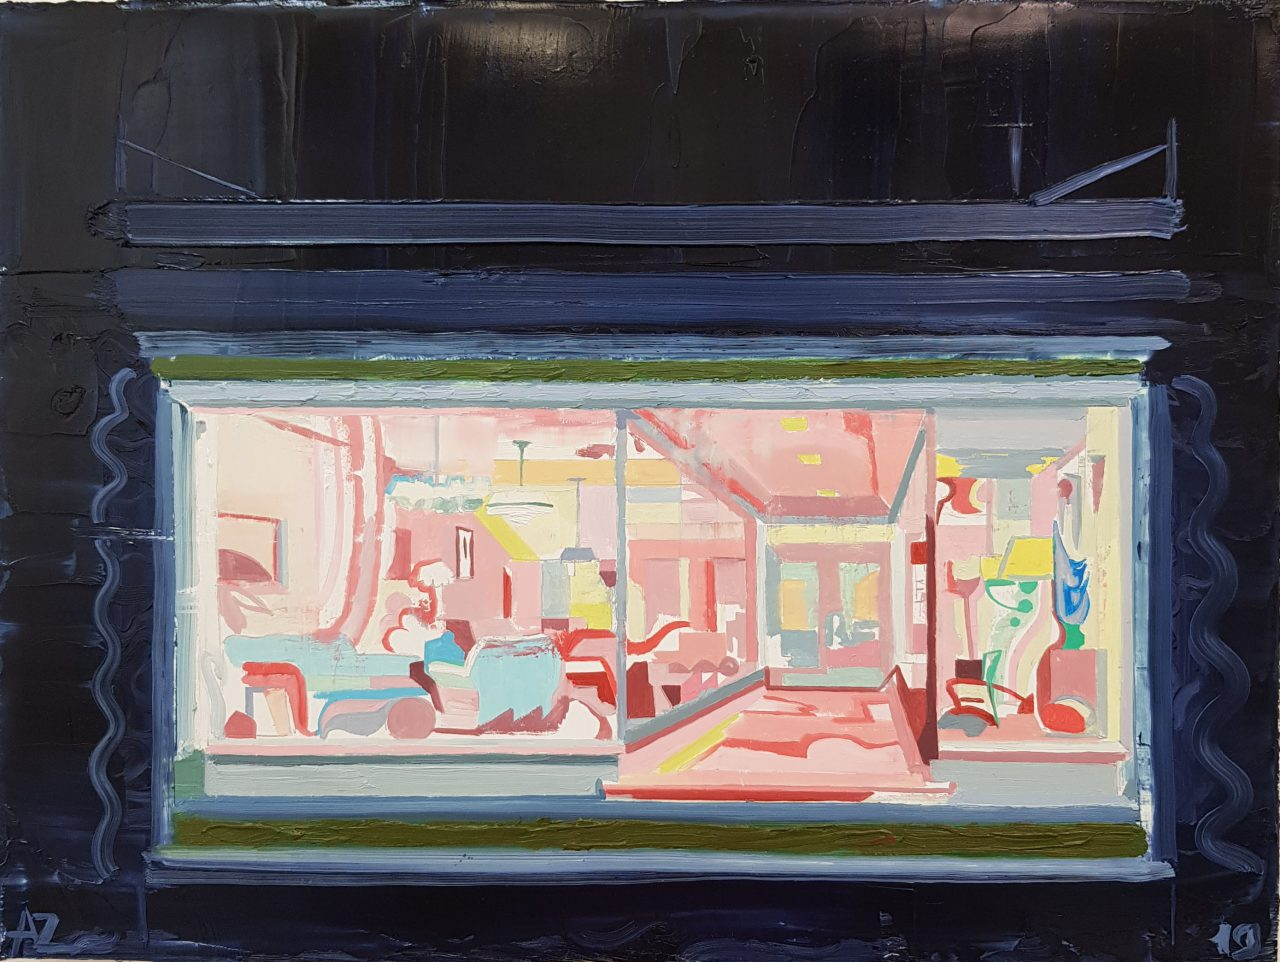 Shop window at night in 1938. Oil on linen, 2019, 30x40cm